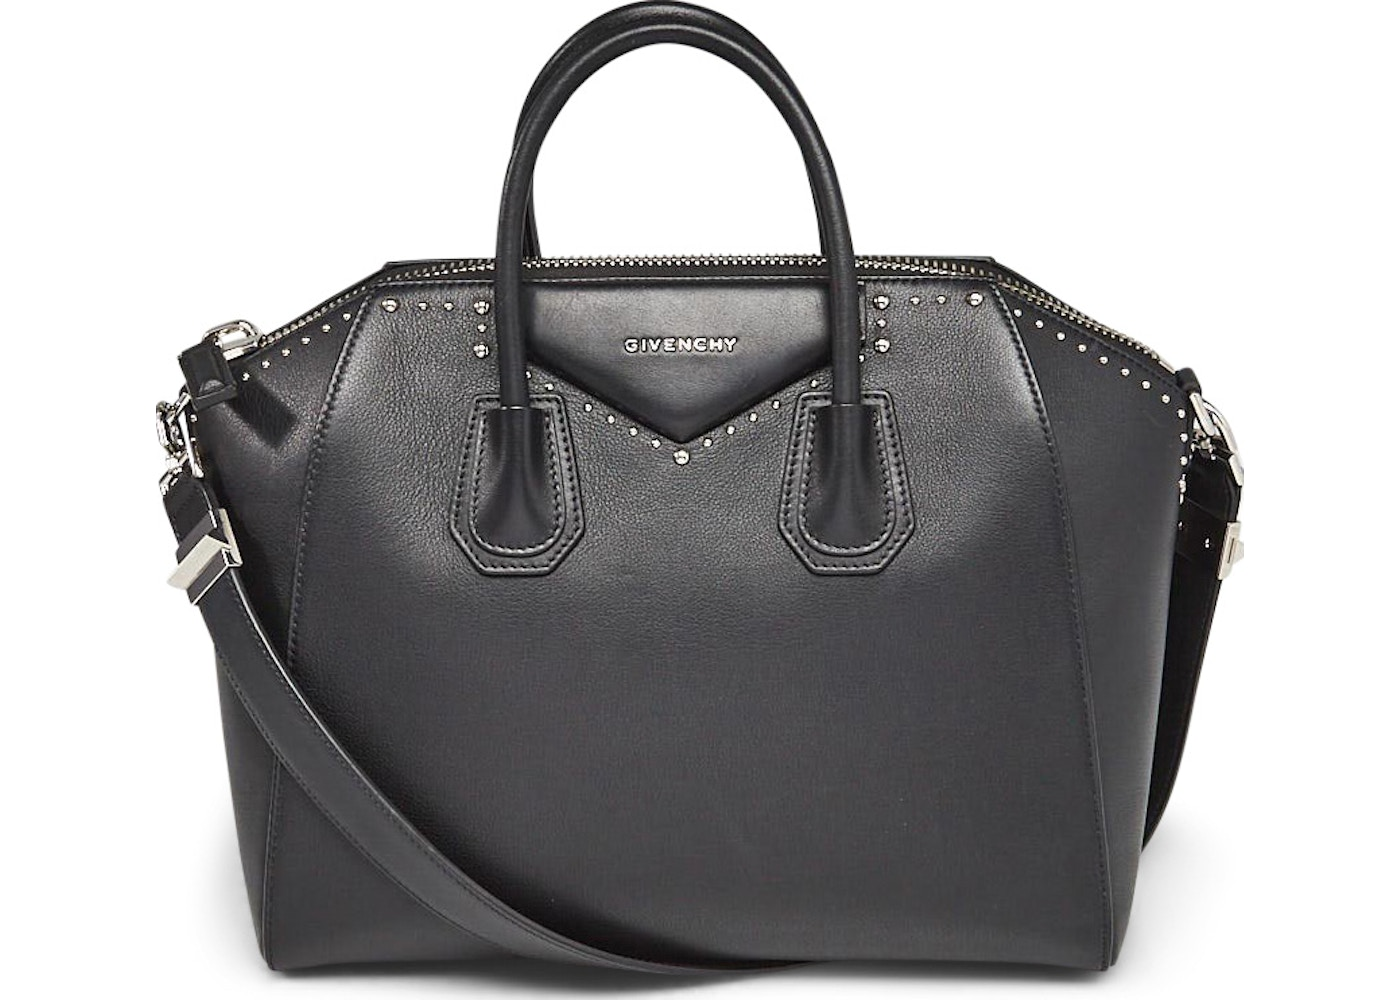 200d154436d Givenchy Antigona Tote Studded Medium Black